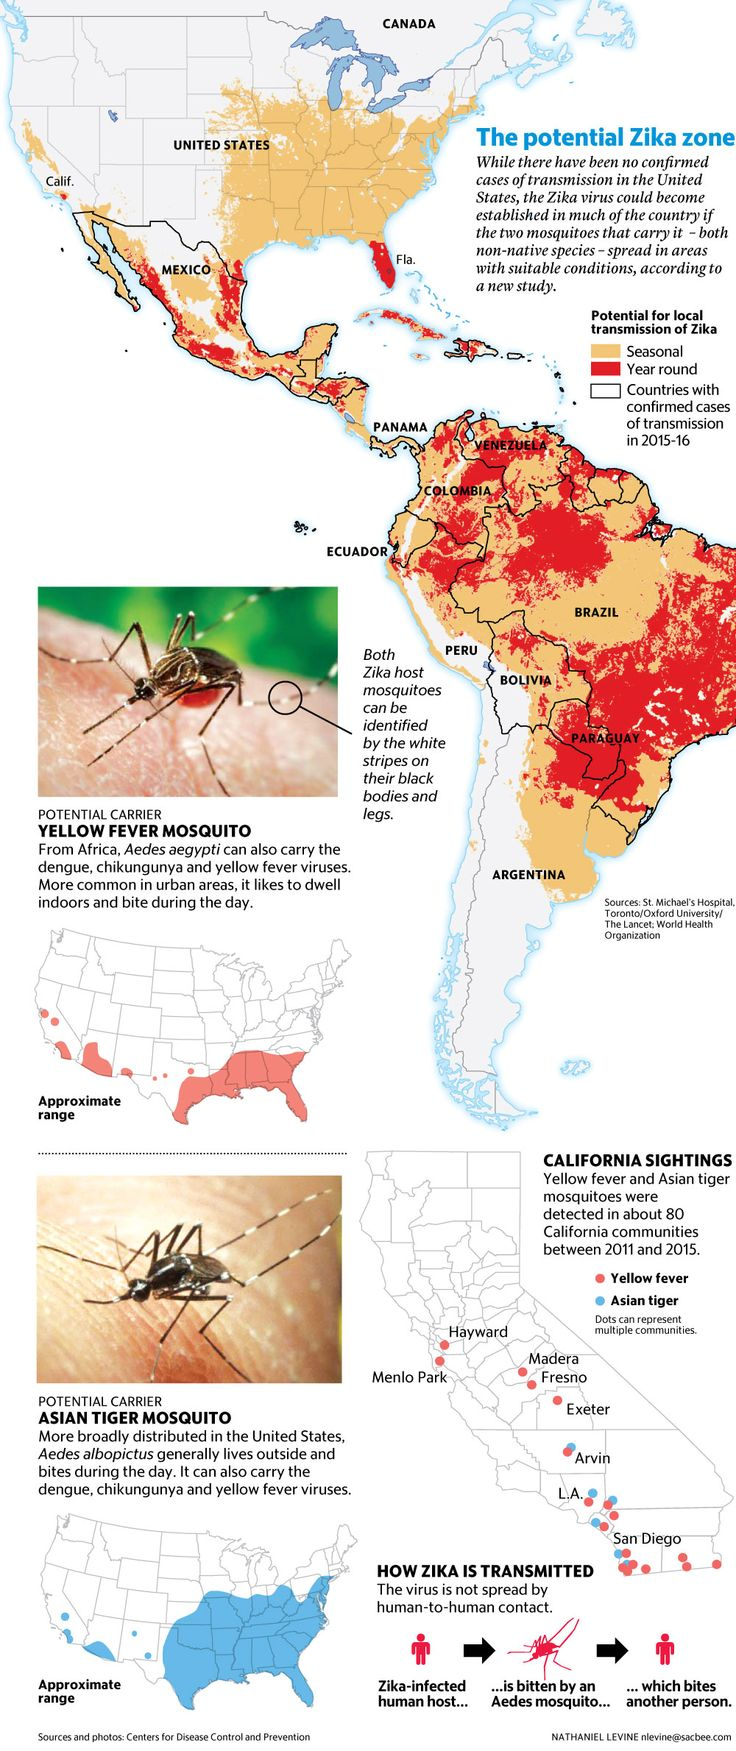 Graphic of potential for zika virus spread